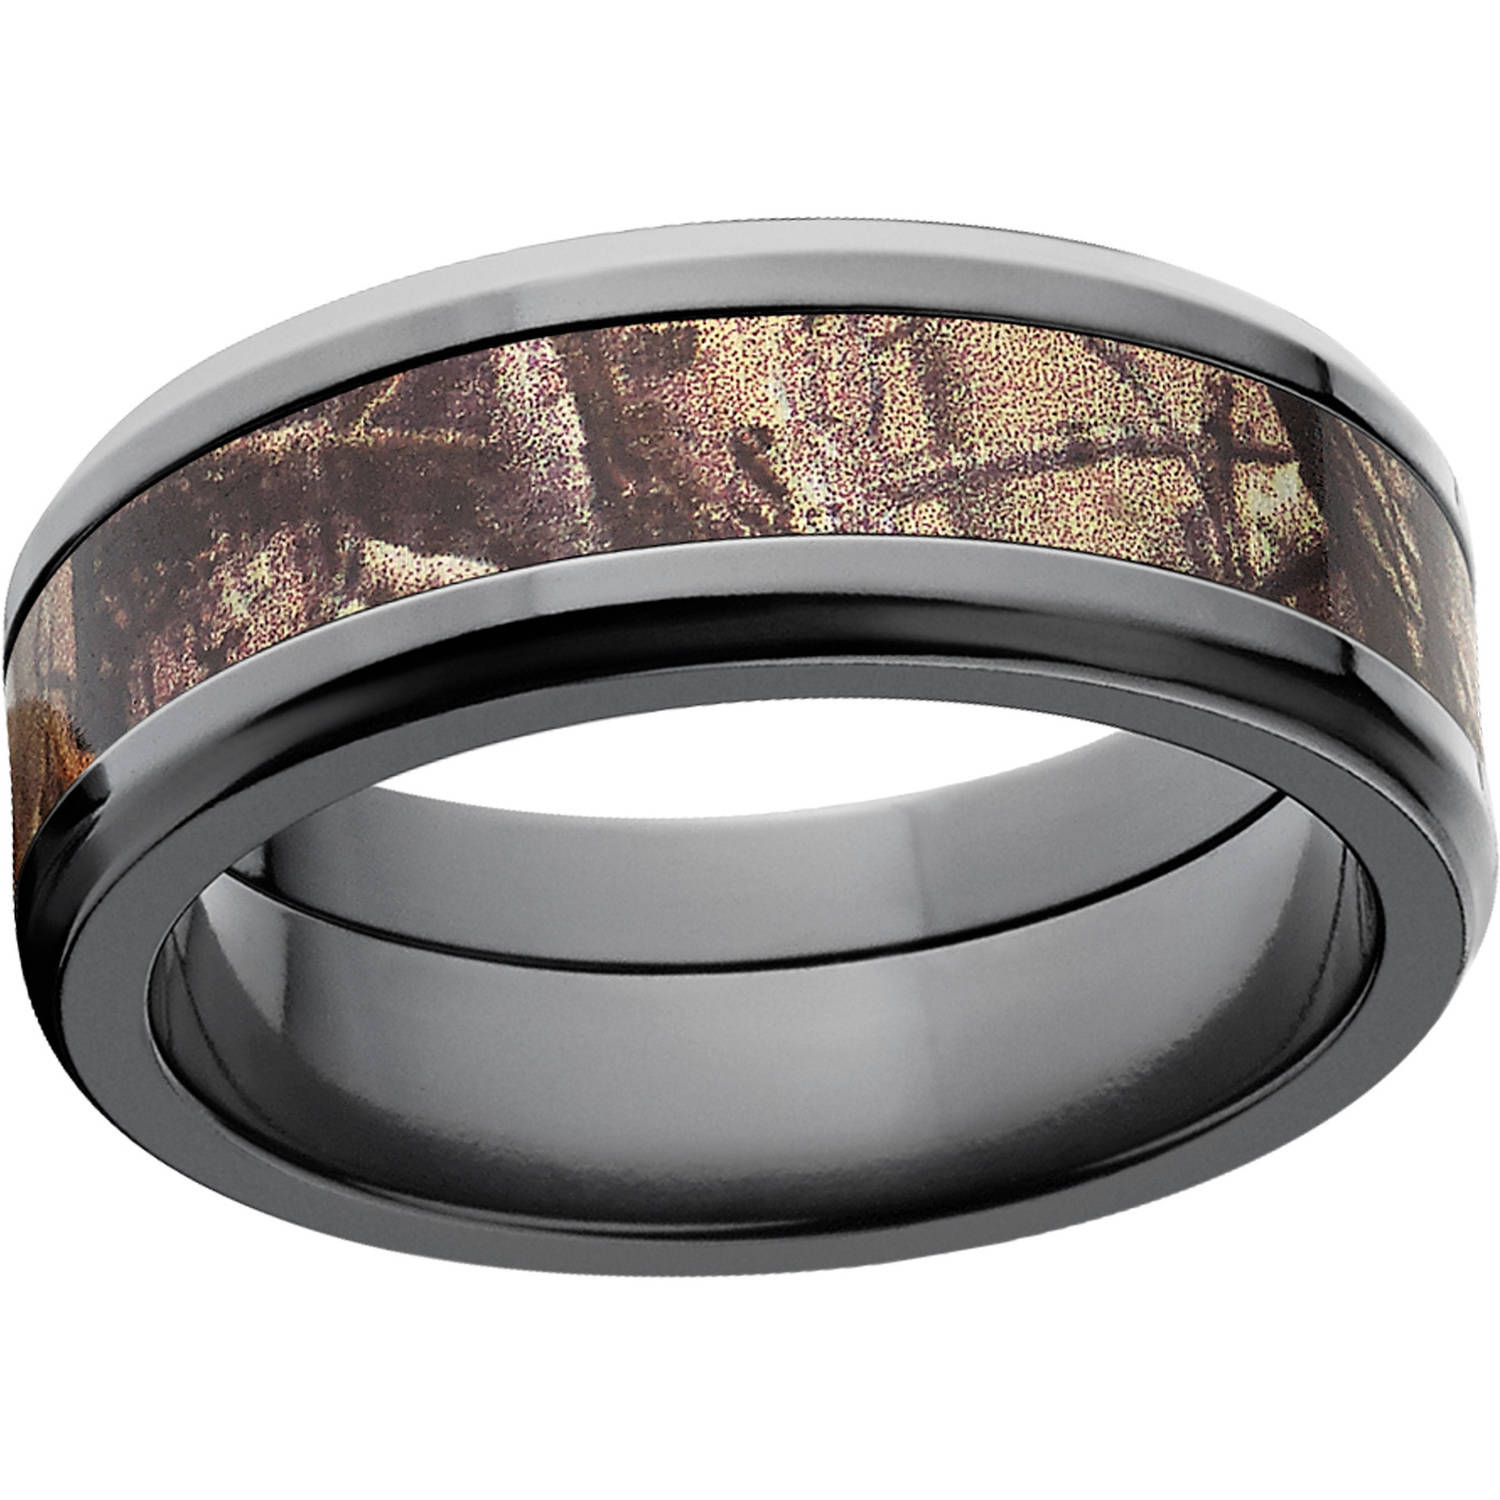 realtree ap mens camo 8mm black zirconium wedding band walmartcom